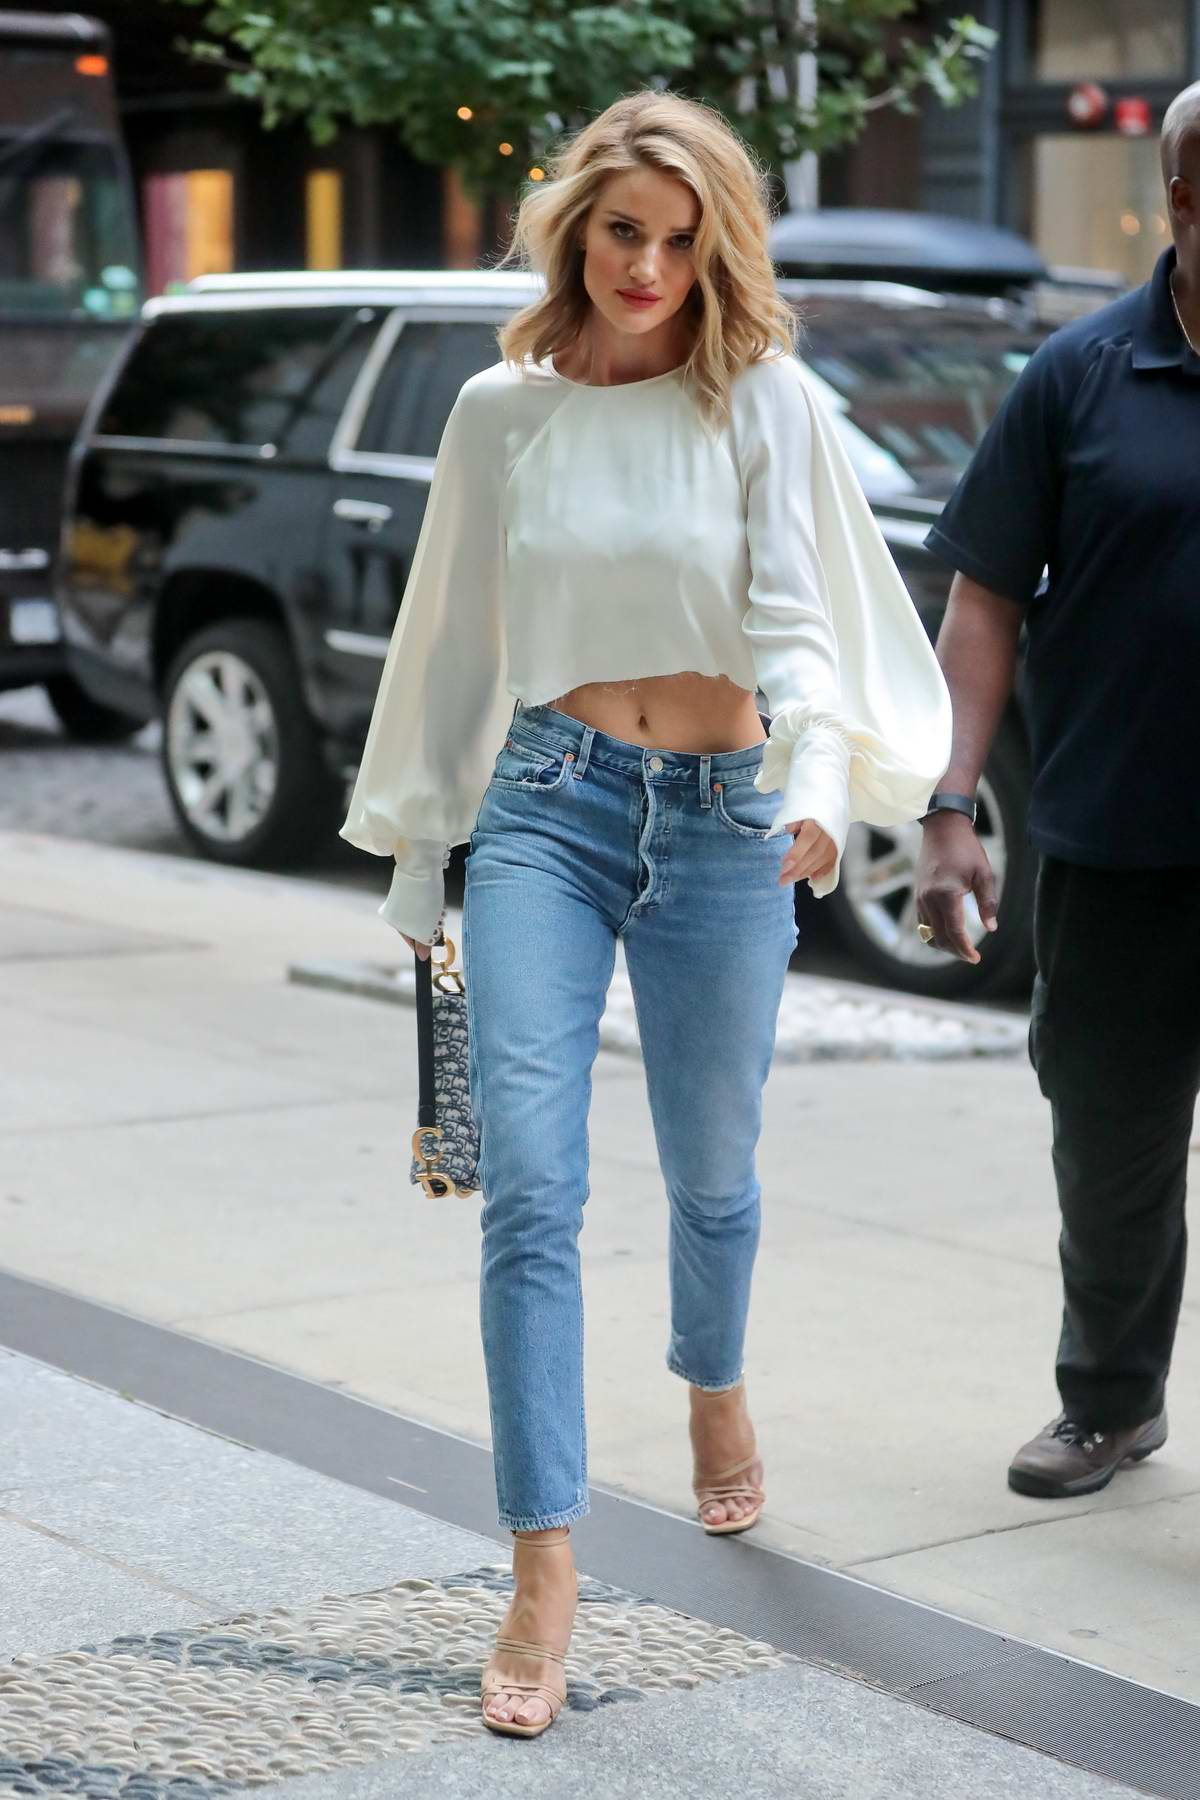 Rosie Huntington-Whiteley steps out in a white cropped top and high waist jeans in New York City